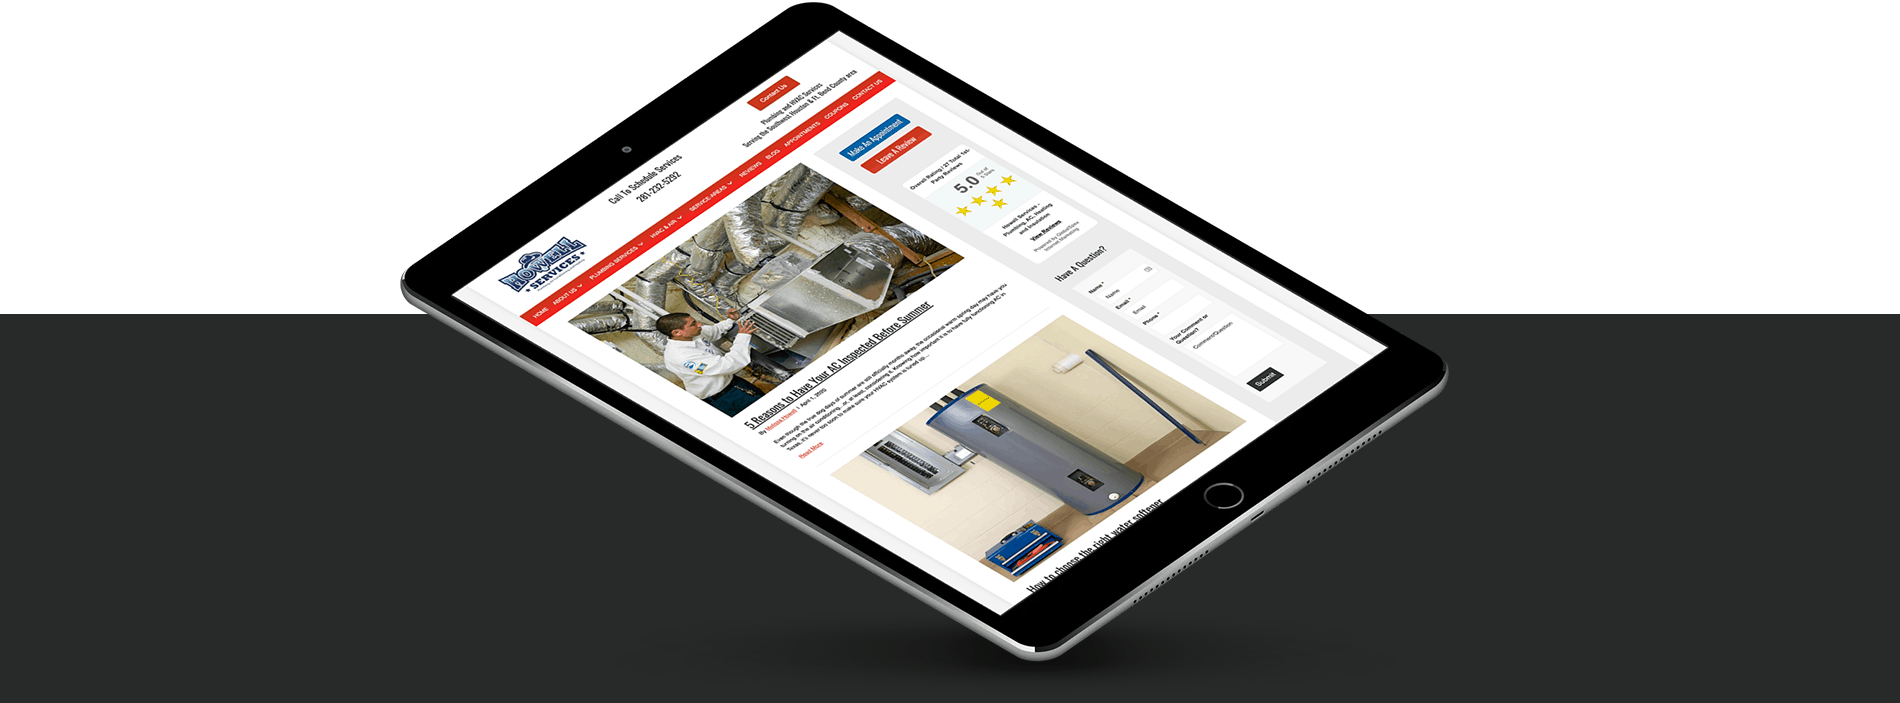 plumber mobile web design